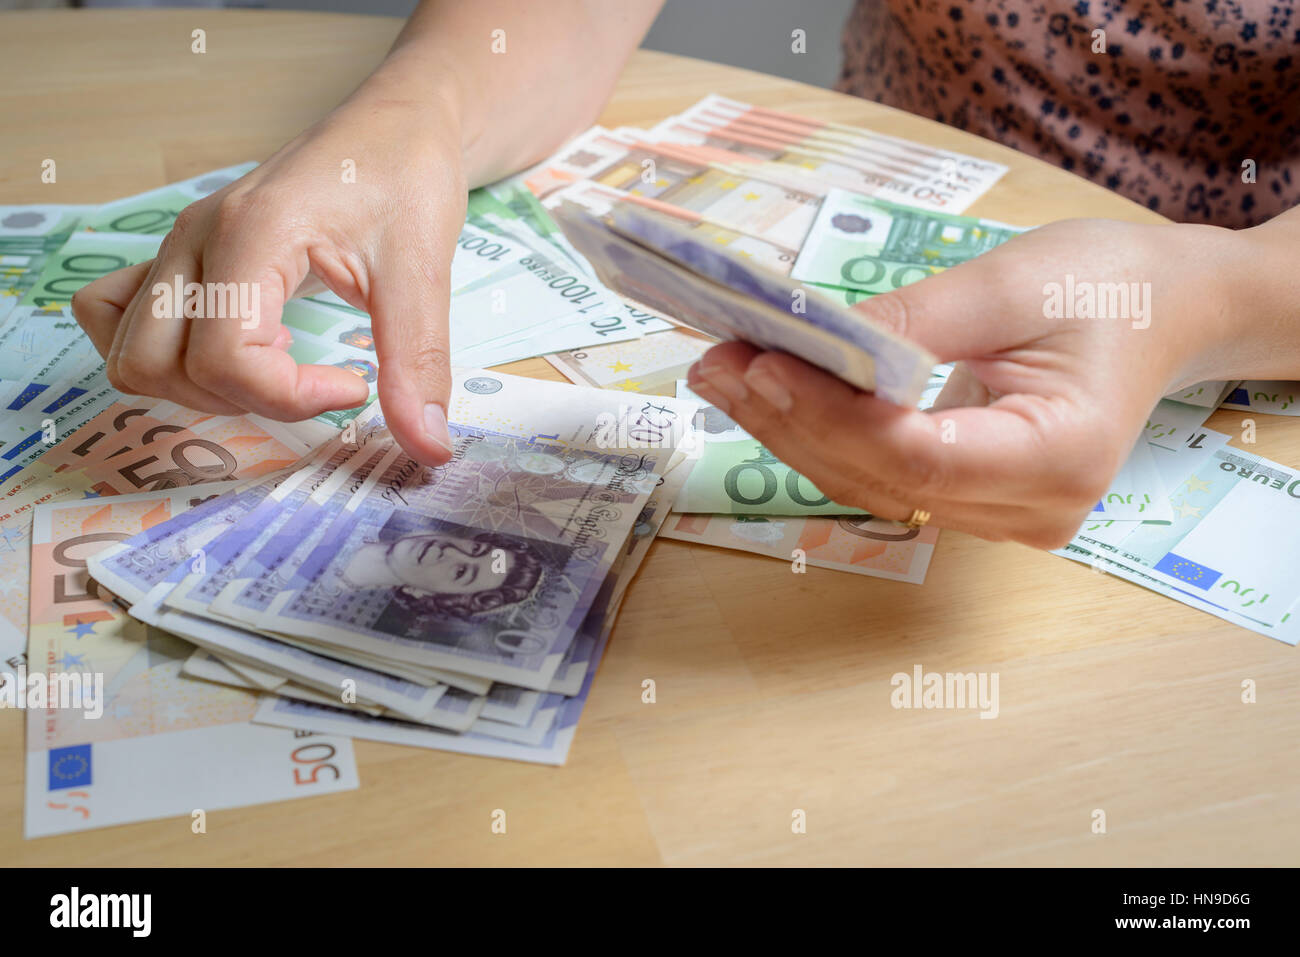 Person counting holiday currency-UK Pounds Sterling and Euros - Stock Image